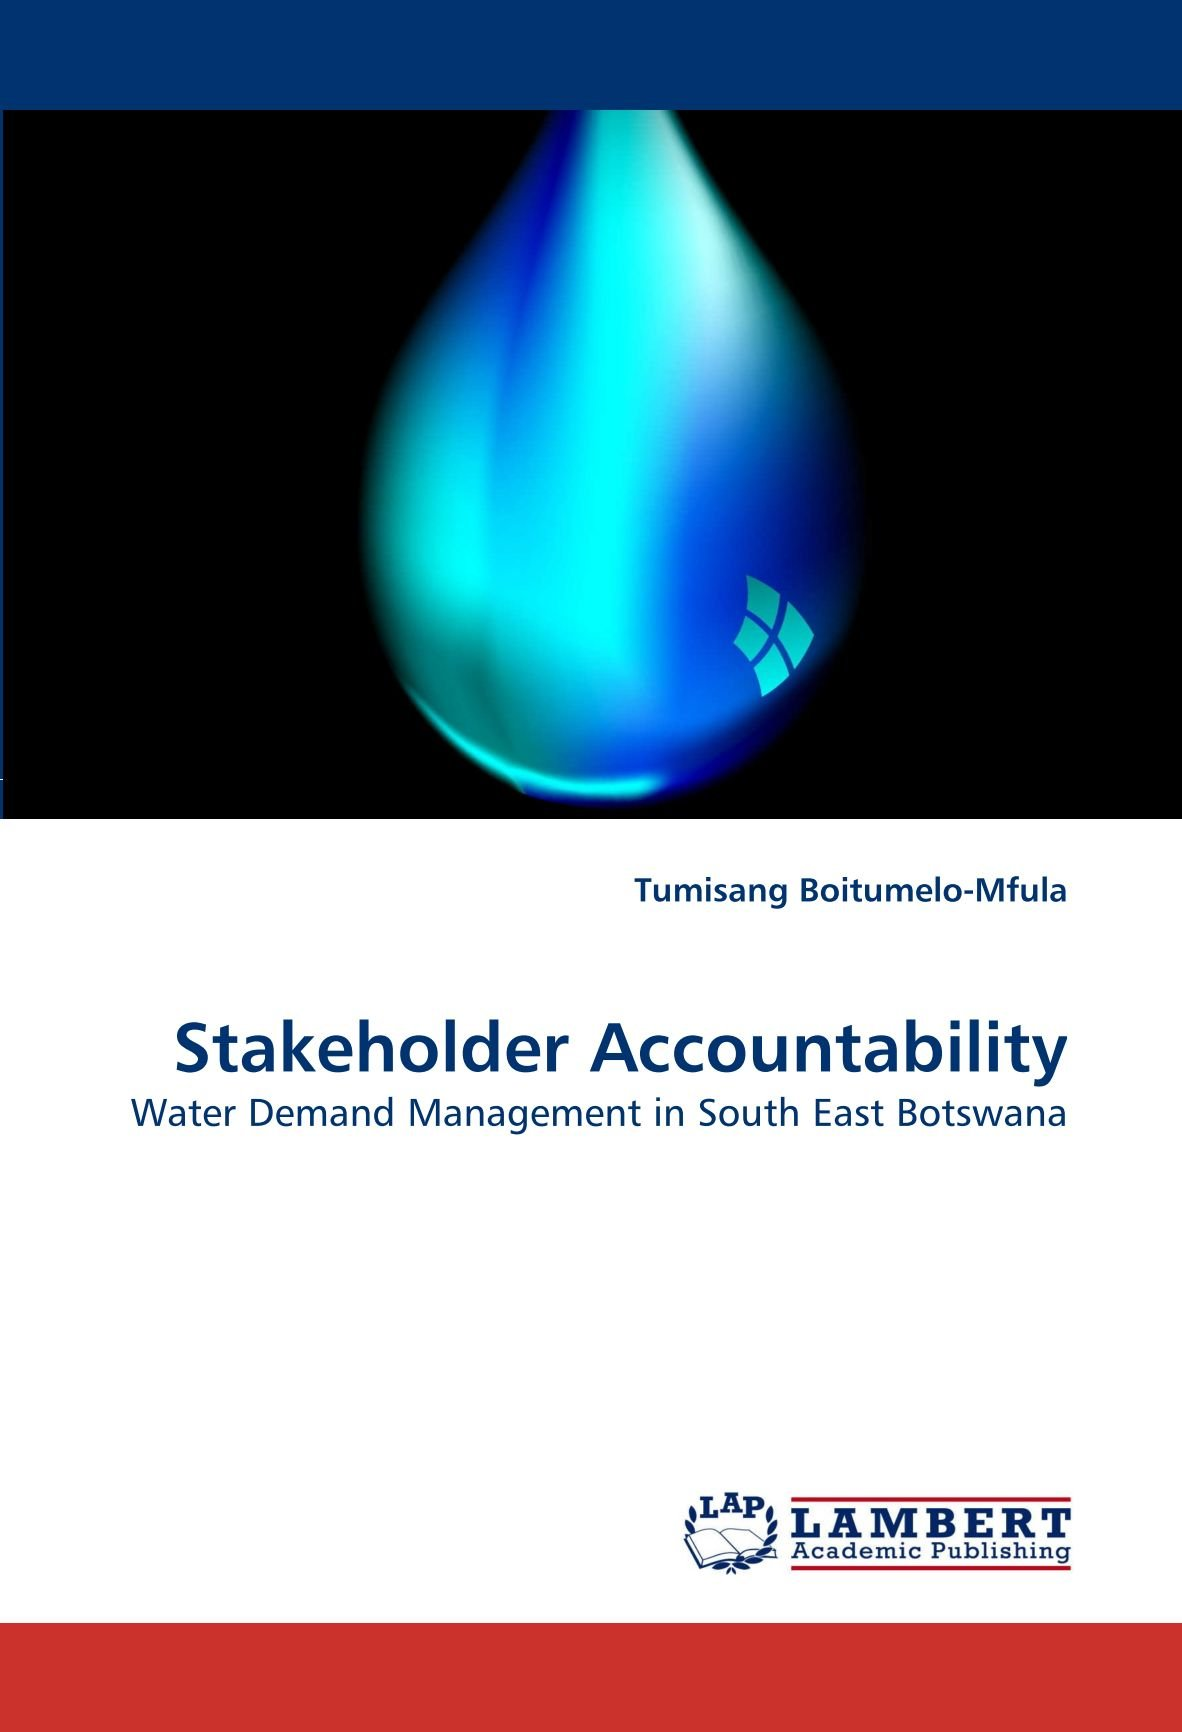 Stakeholder Accountability: Water Demand Management in South